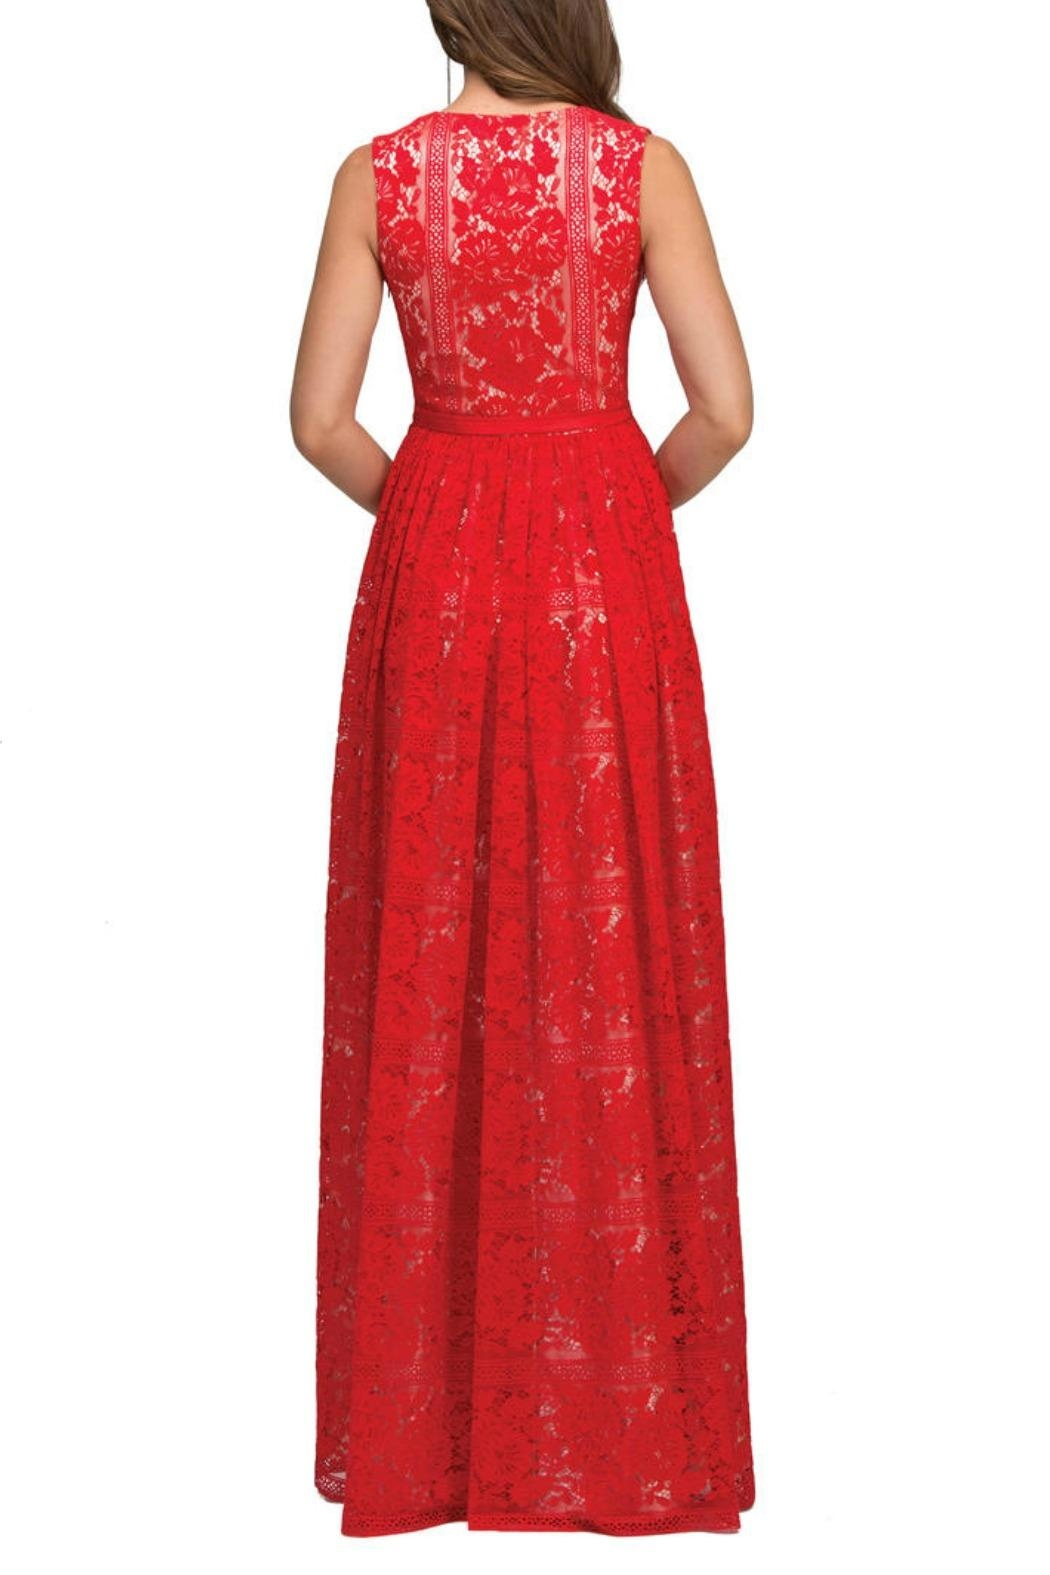 Lucci Lu Lace Empire Gown from Kansas by Eccentricity — Shoptiques